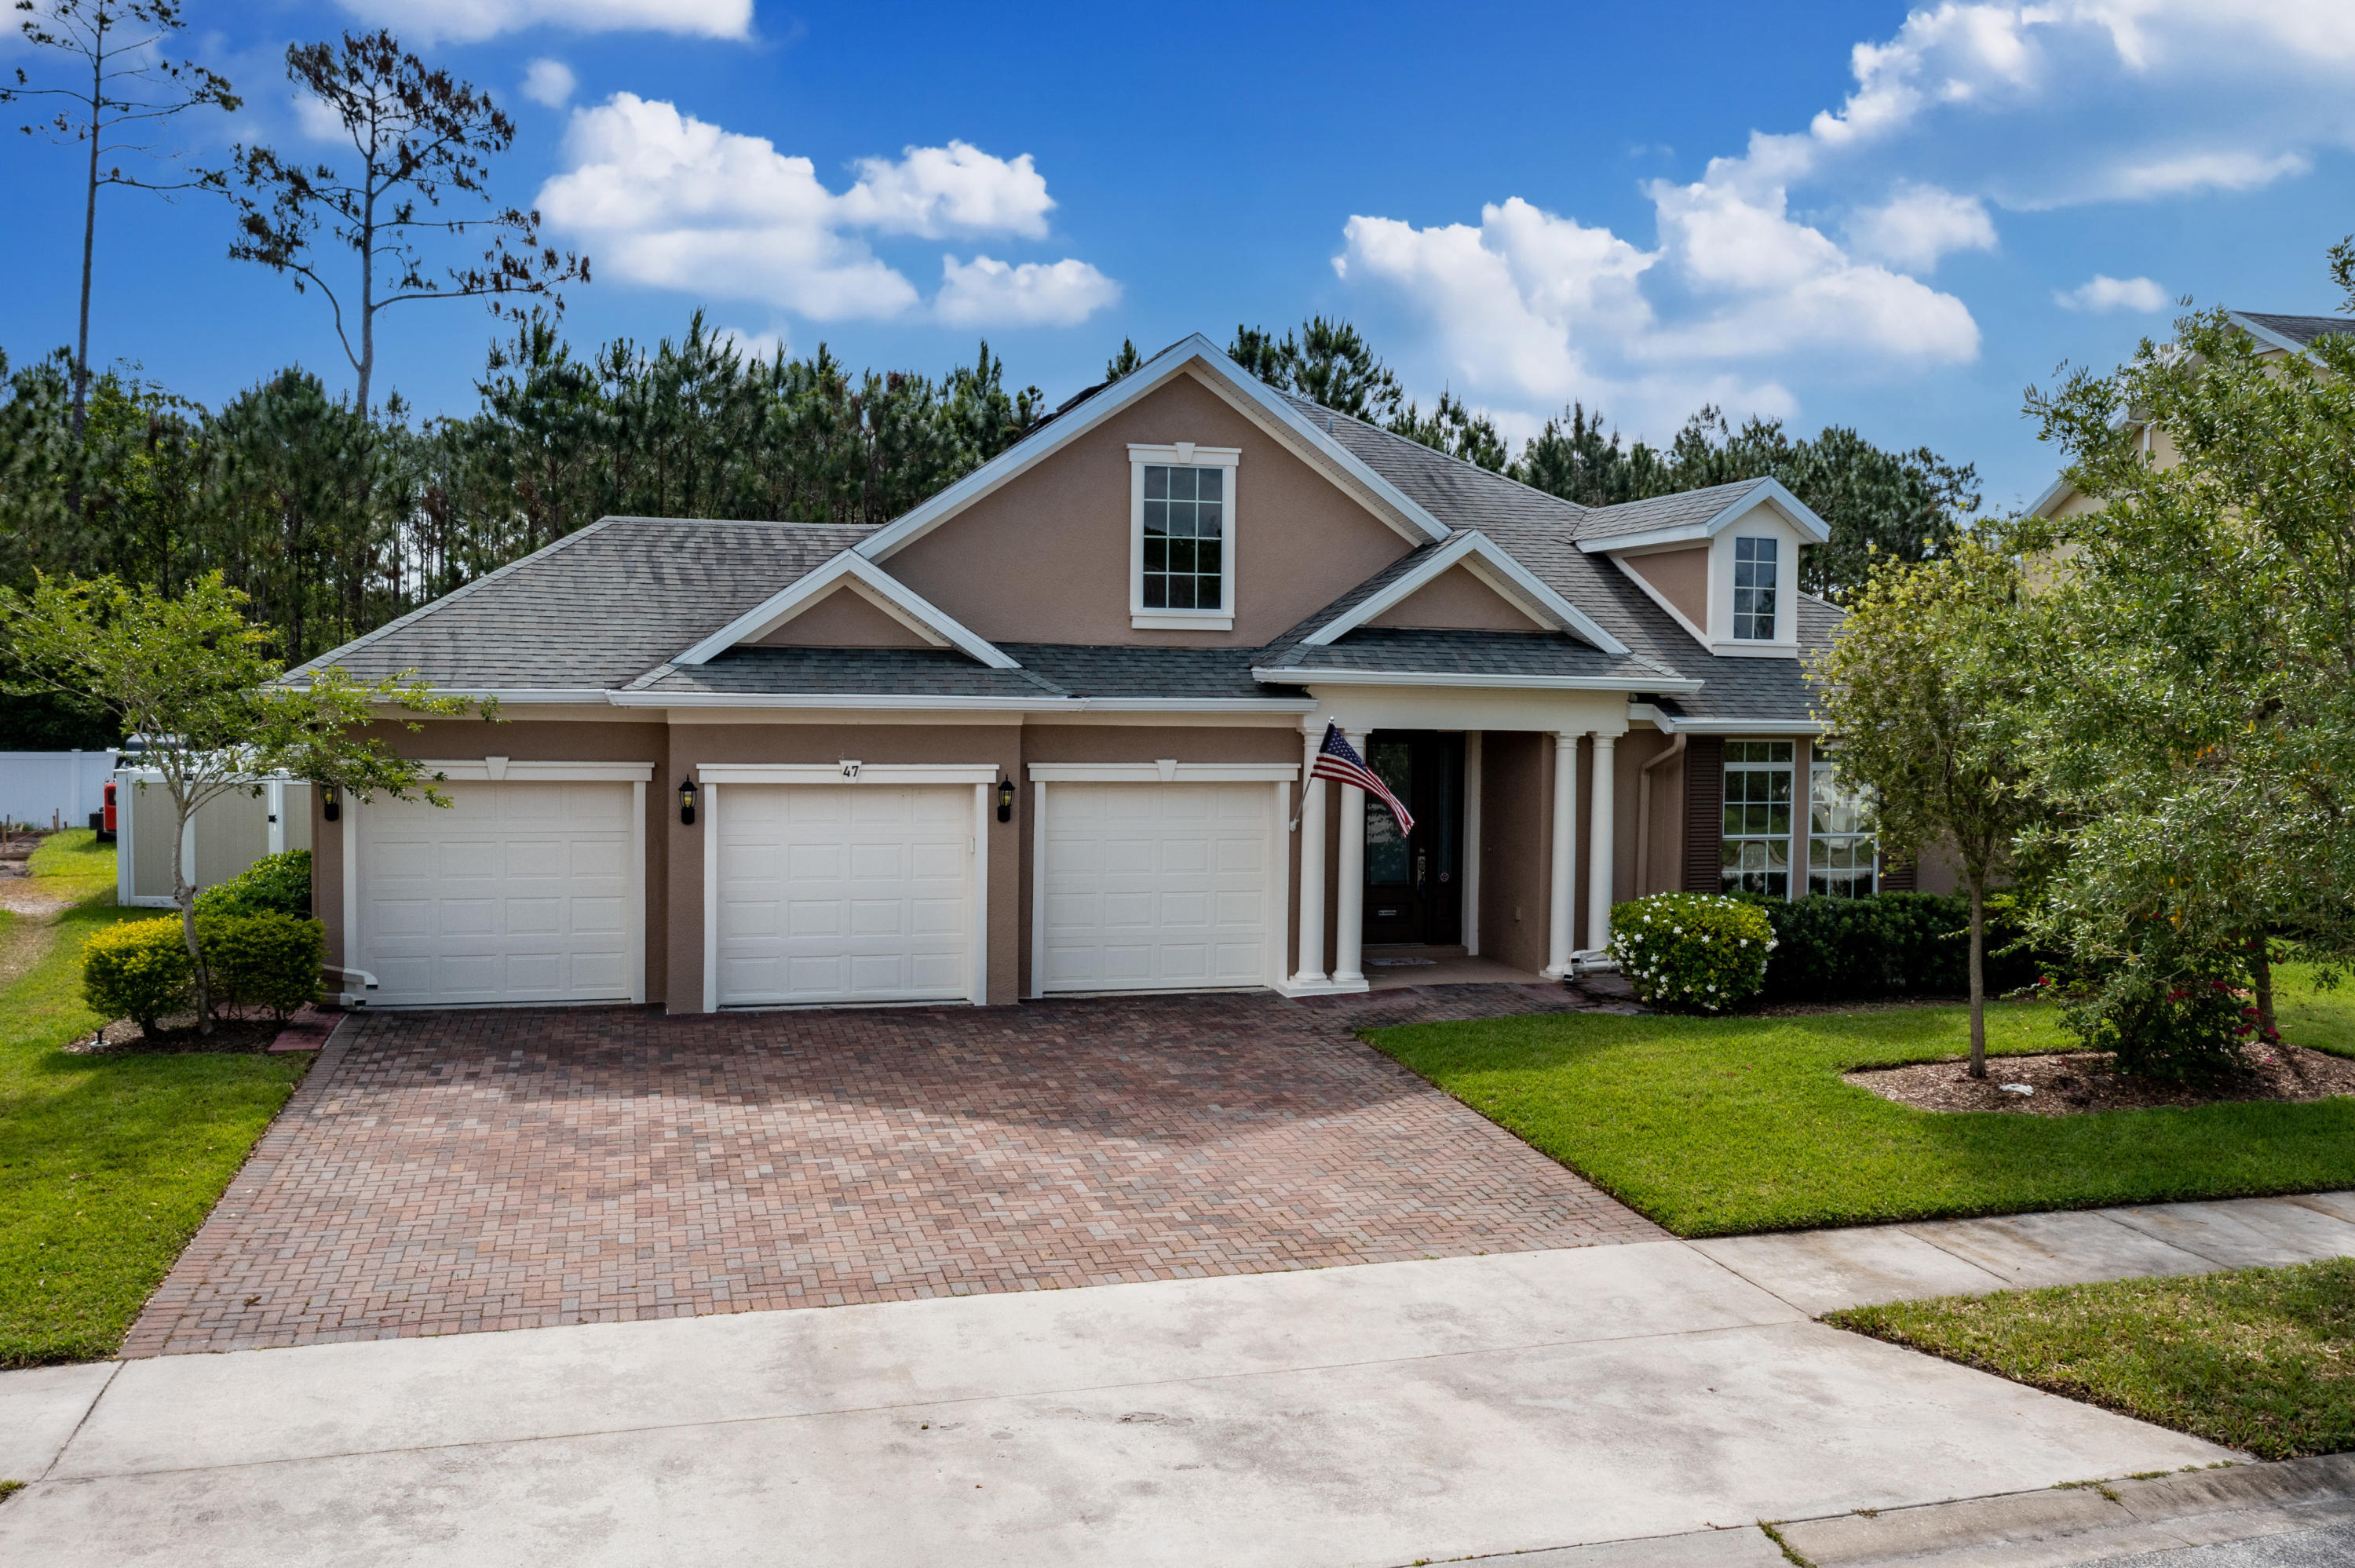 Details for 47 Herringbone Way 1412309002, Ormond Beach, FL 32174